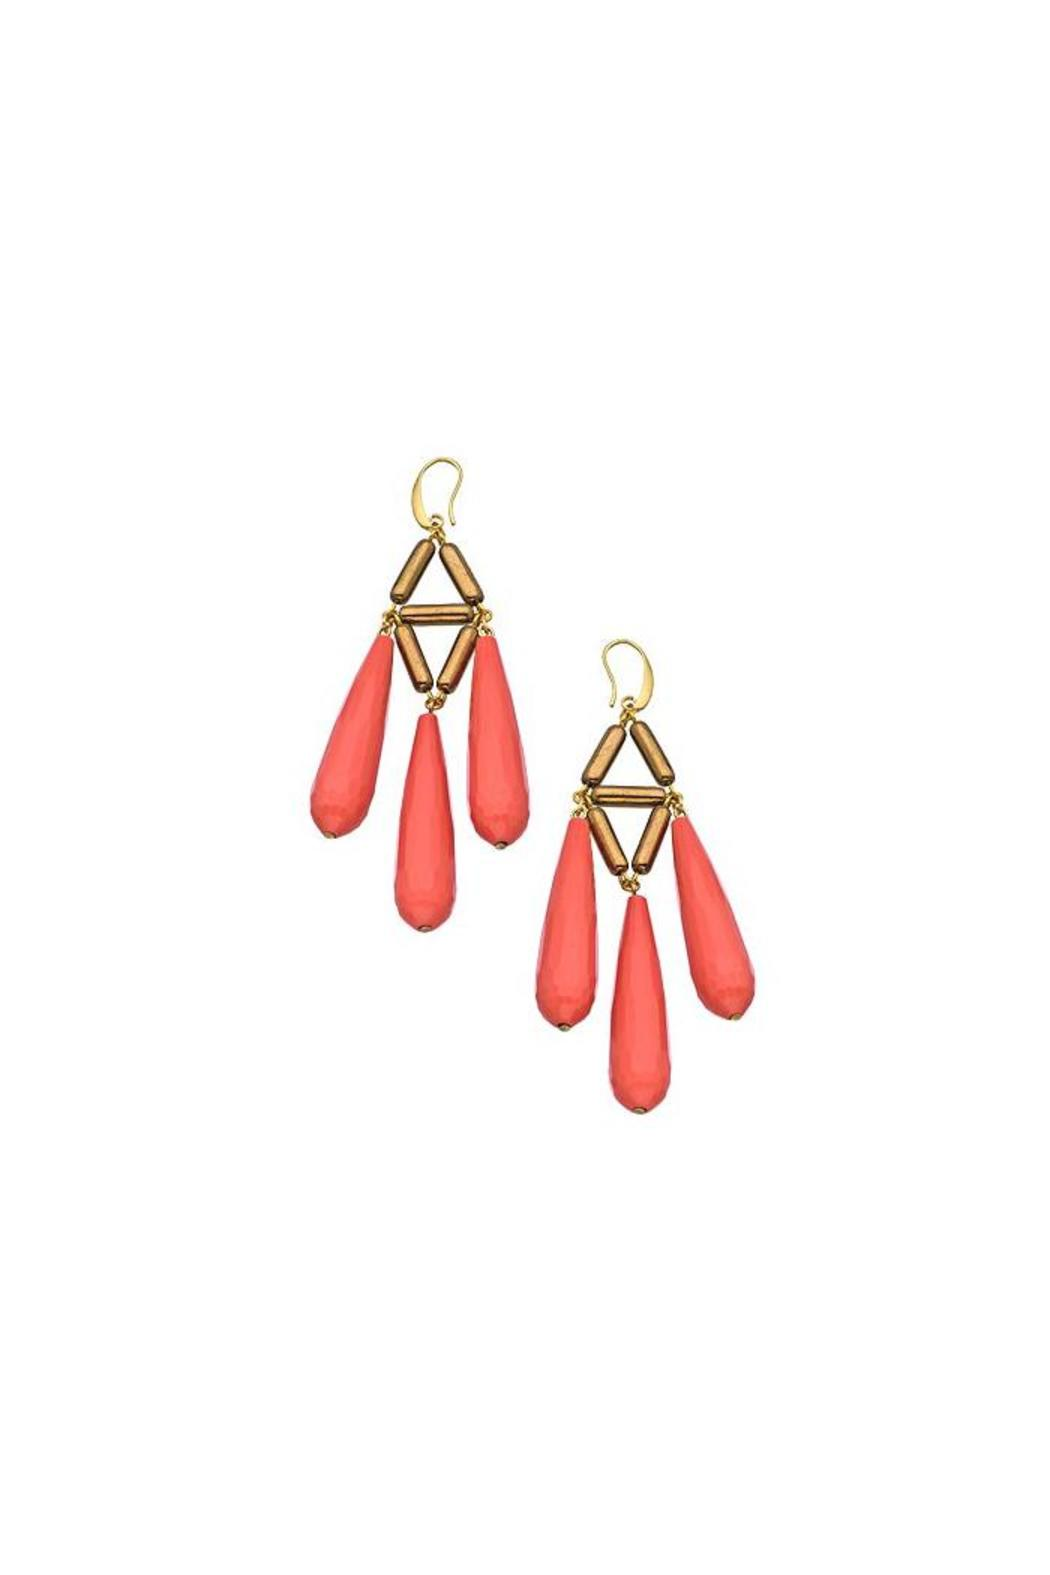 David aubrey coral chandelier earrings from brooklyn by lee lees david aubrey coral chandelier earrings front cropped image aloadofball Gallery